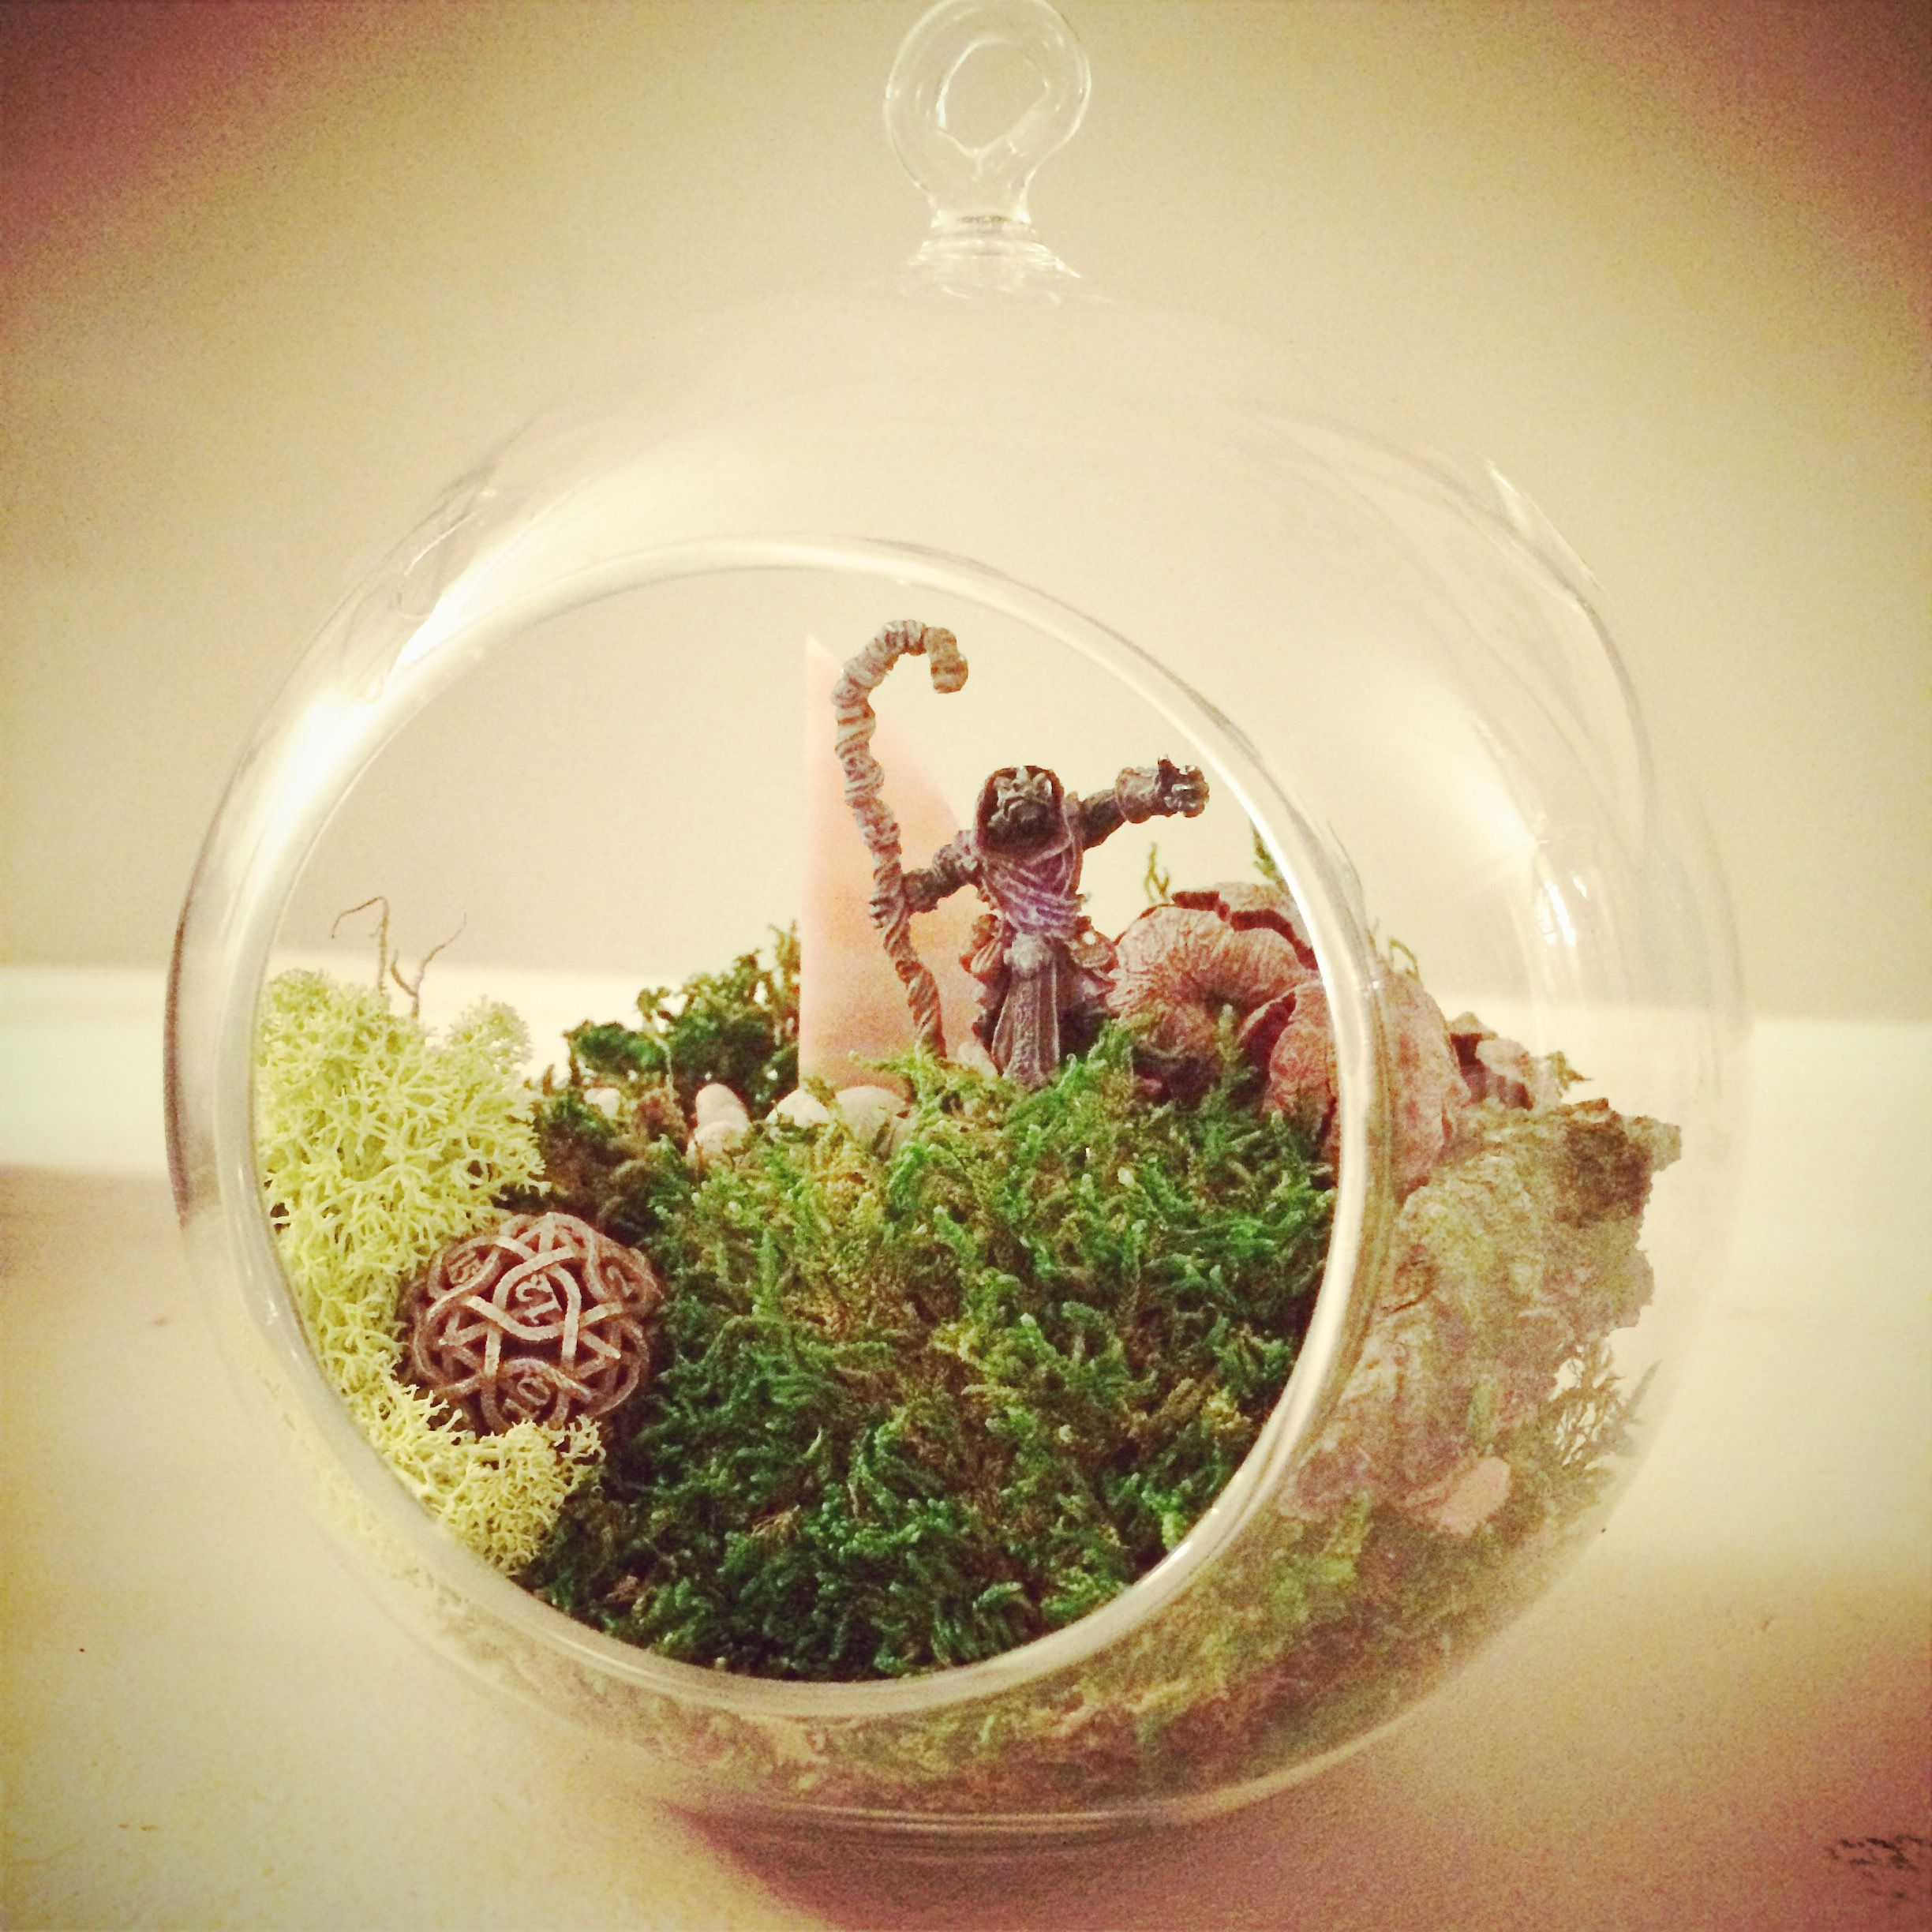 Nerdy Cute Terrarium With D20 And Dungeons And Dragon Dnd